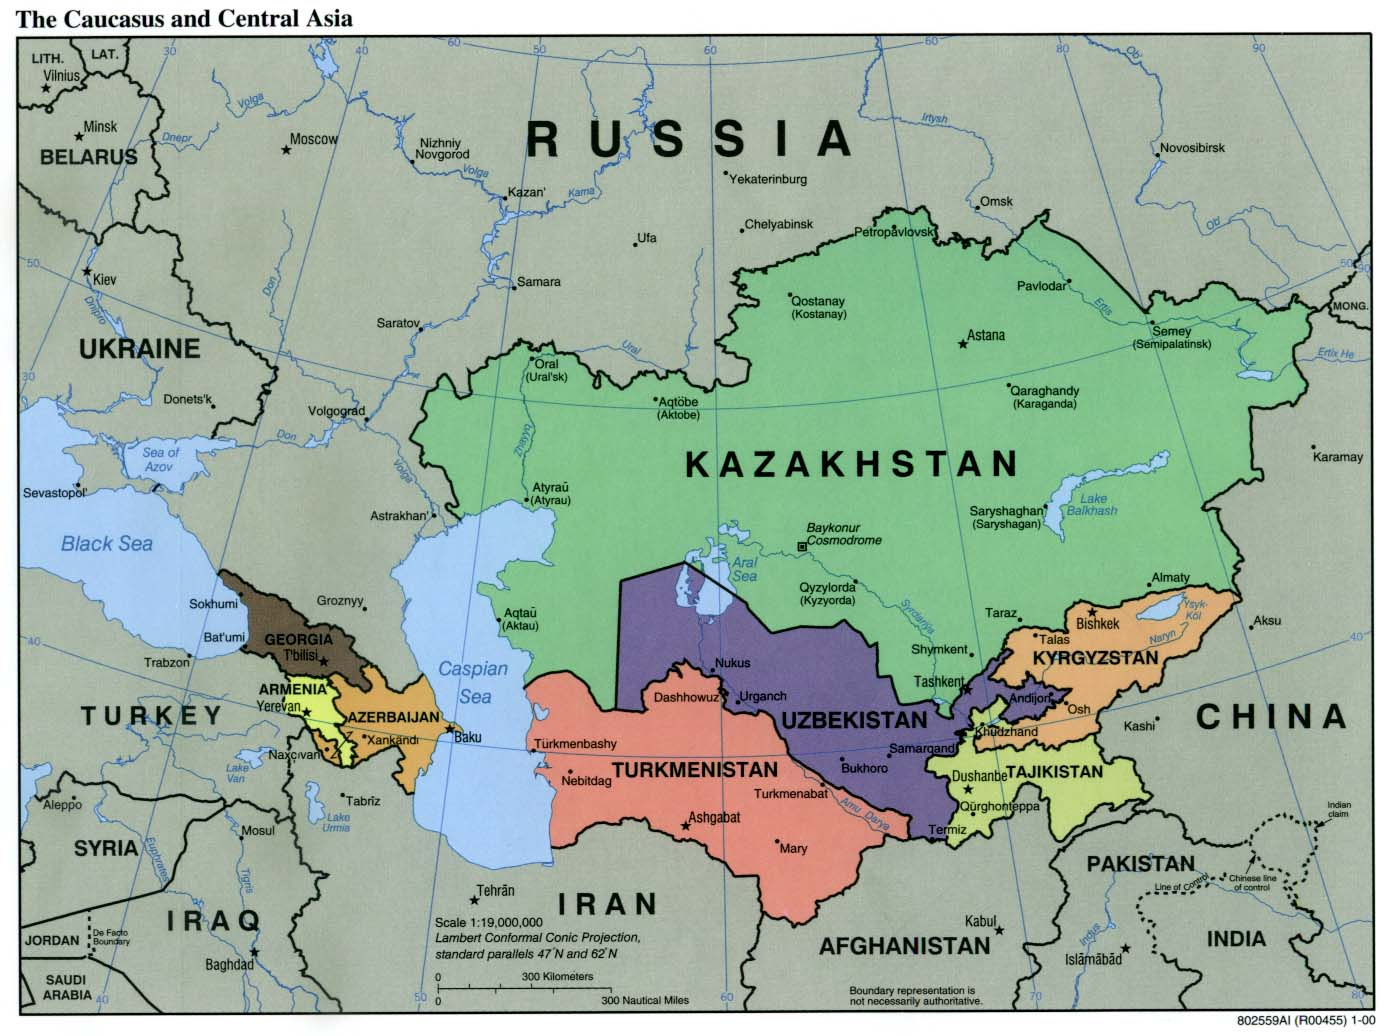 Central Asia Political Map File:Caucasus central asia political map 2000.   Wikimedia Commons